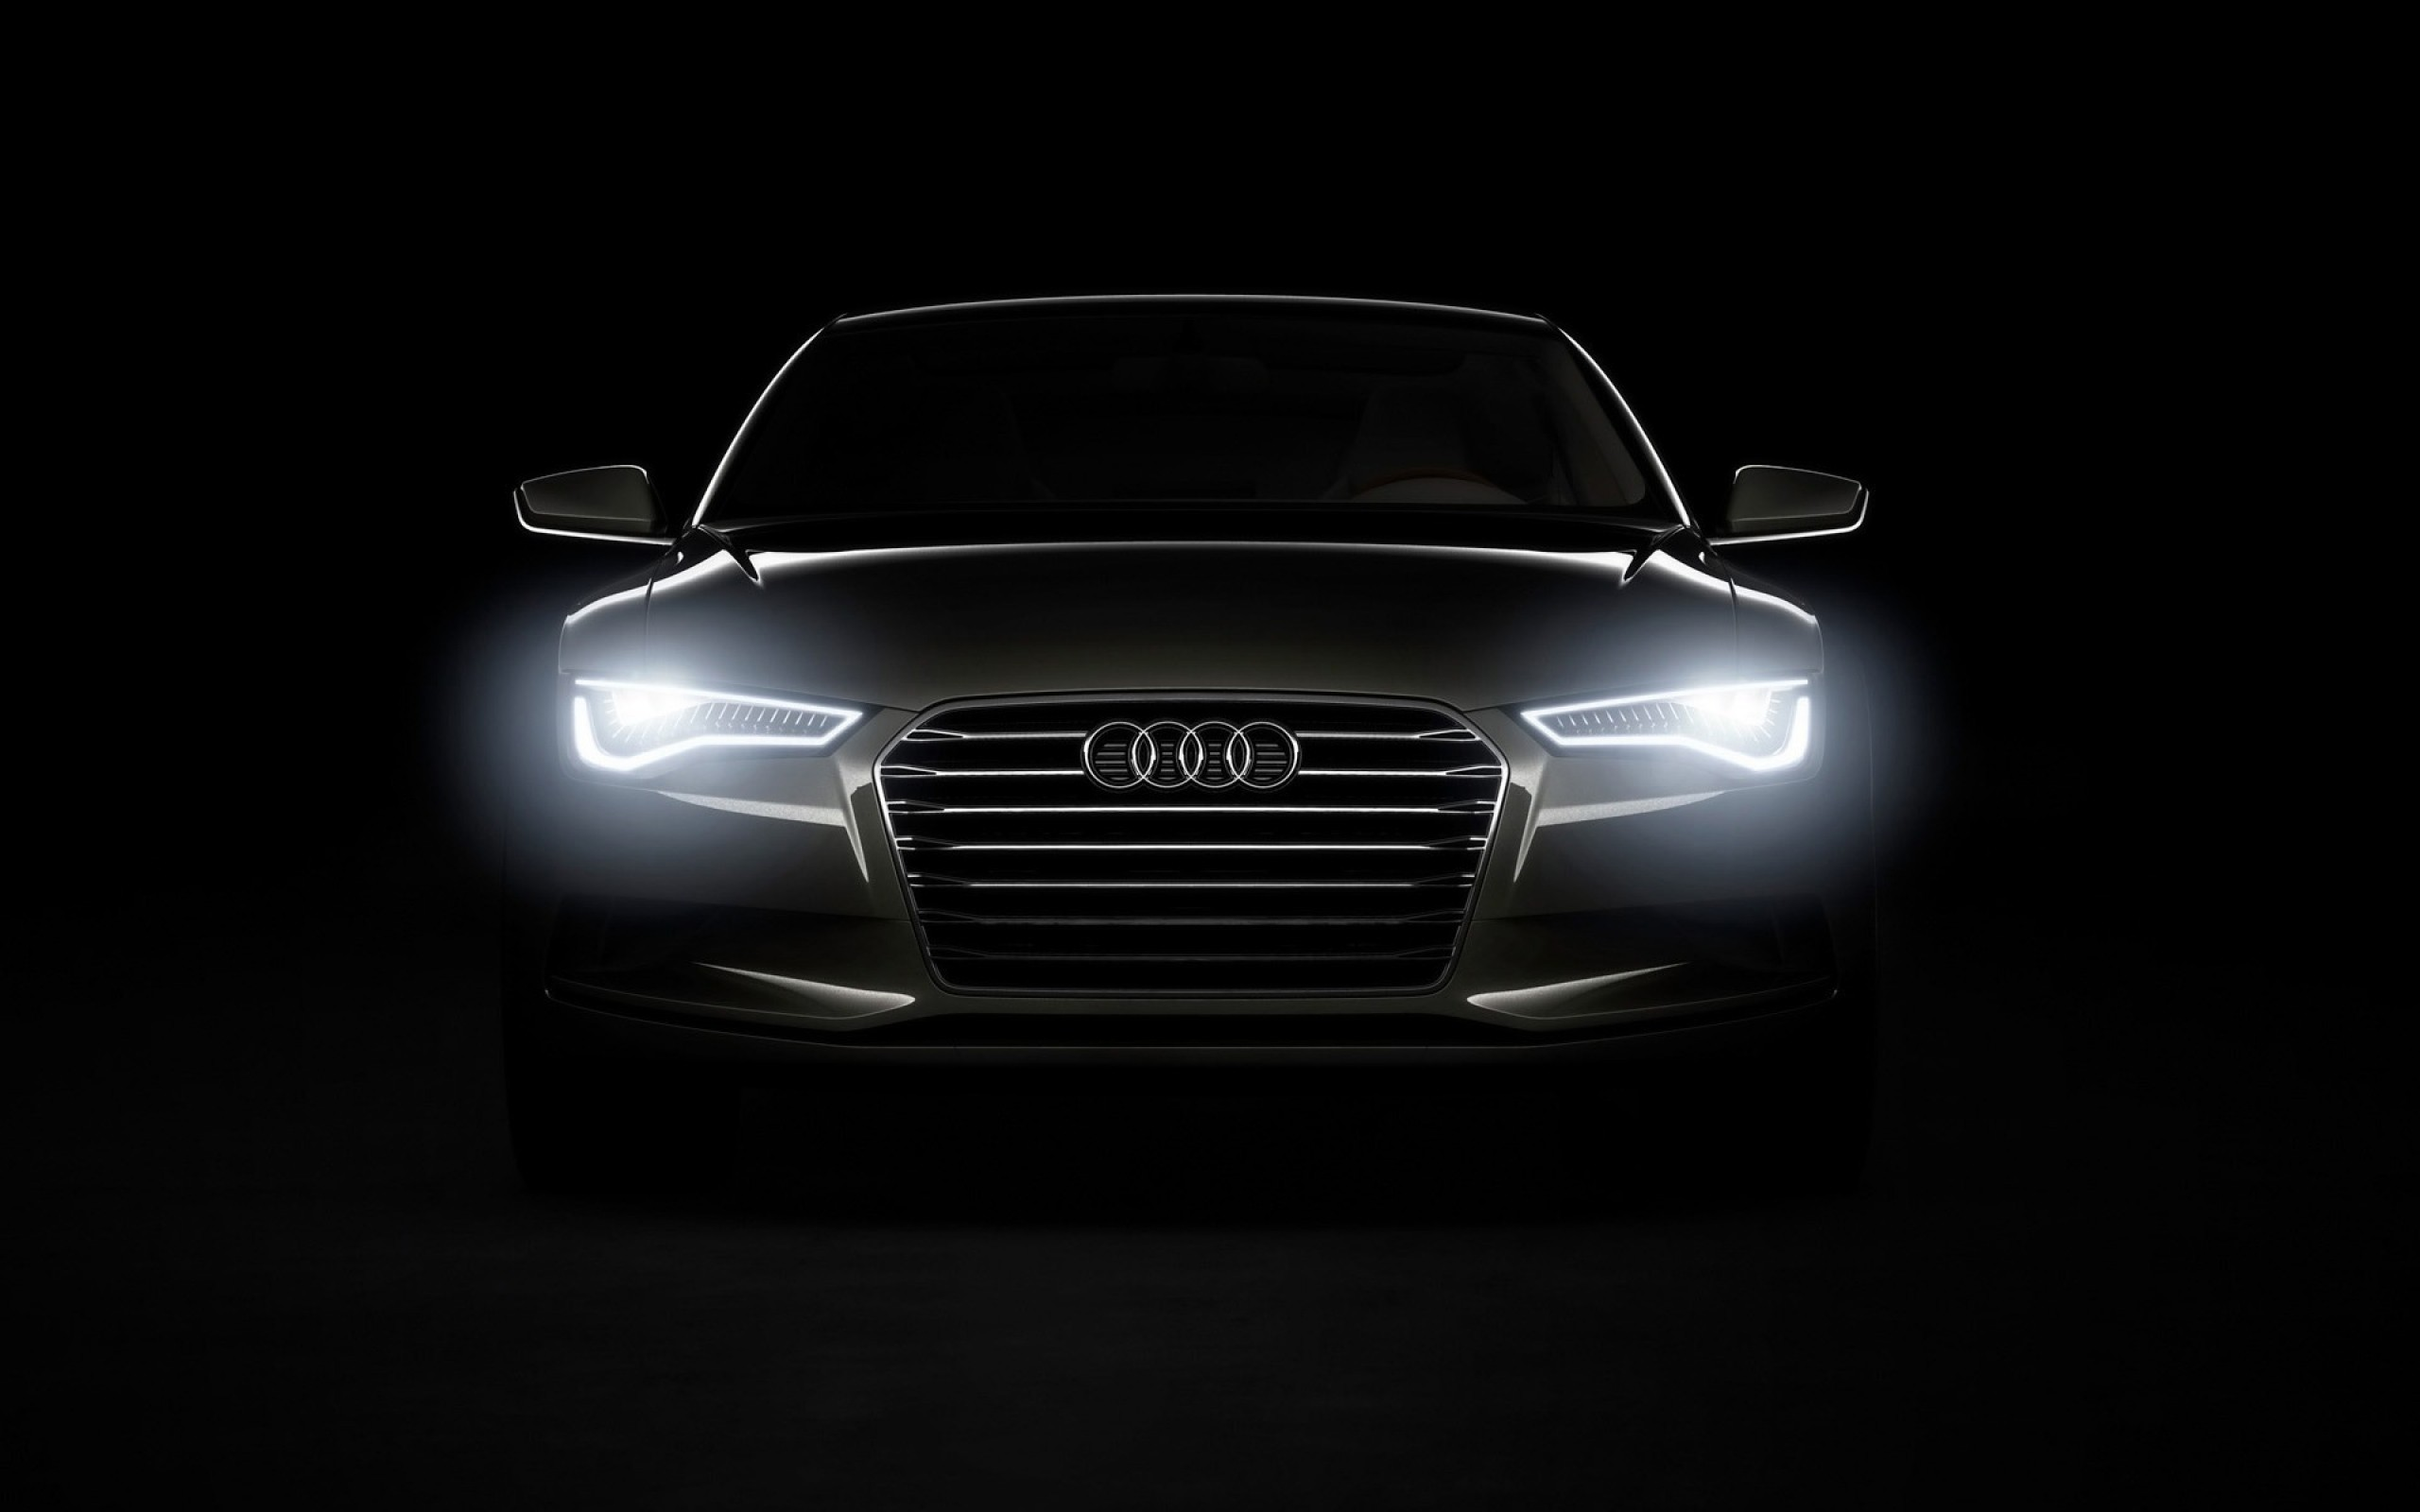 Audi Headlights in the Dark